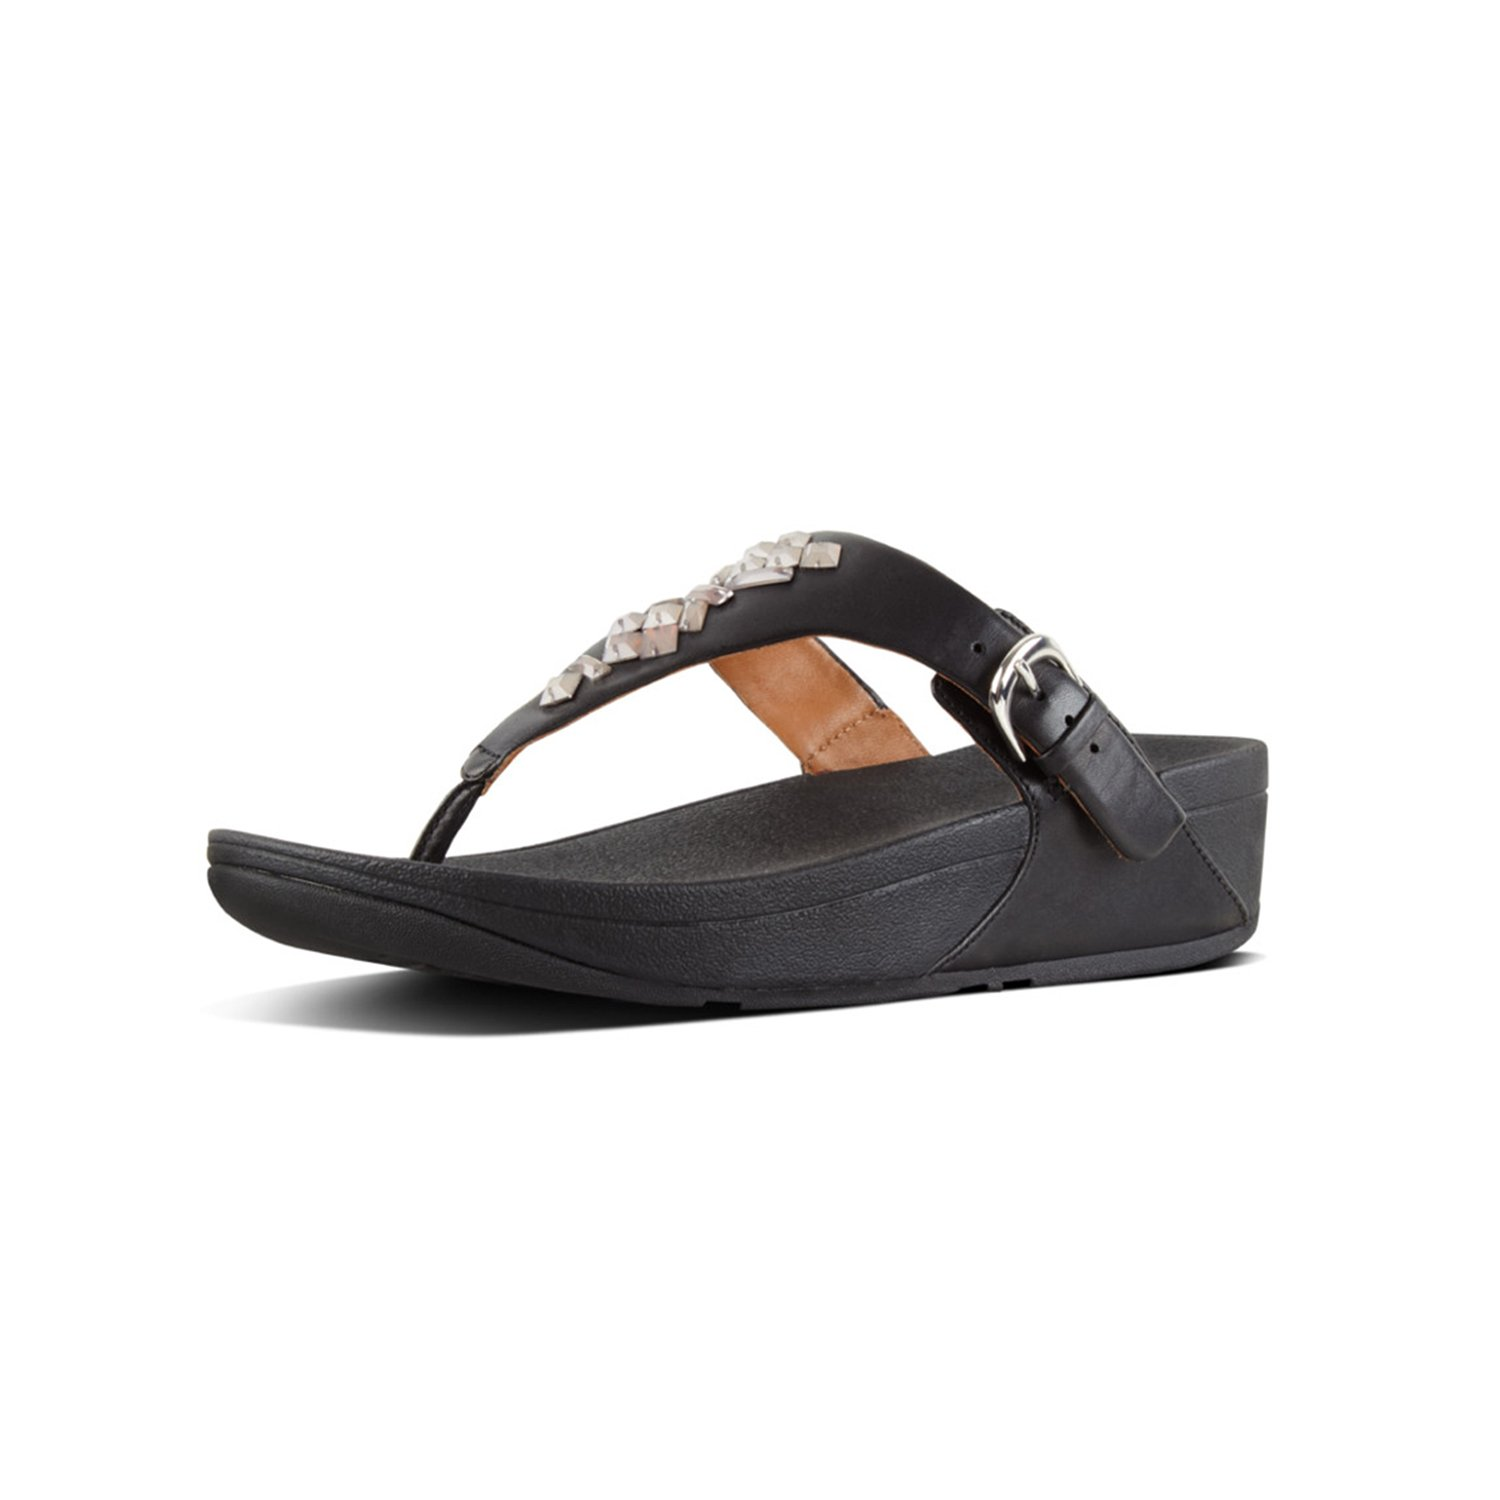 9b728bb066d2 Fitflop Women s s Skinny Tm Toe-Thong Sandals Crystal Flip Flops   Amazon.co.uk  Shoes   Bags